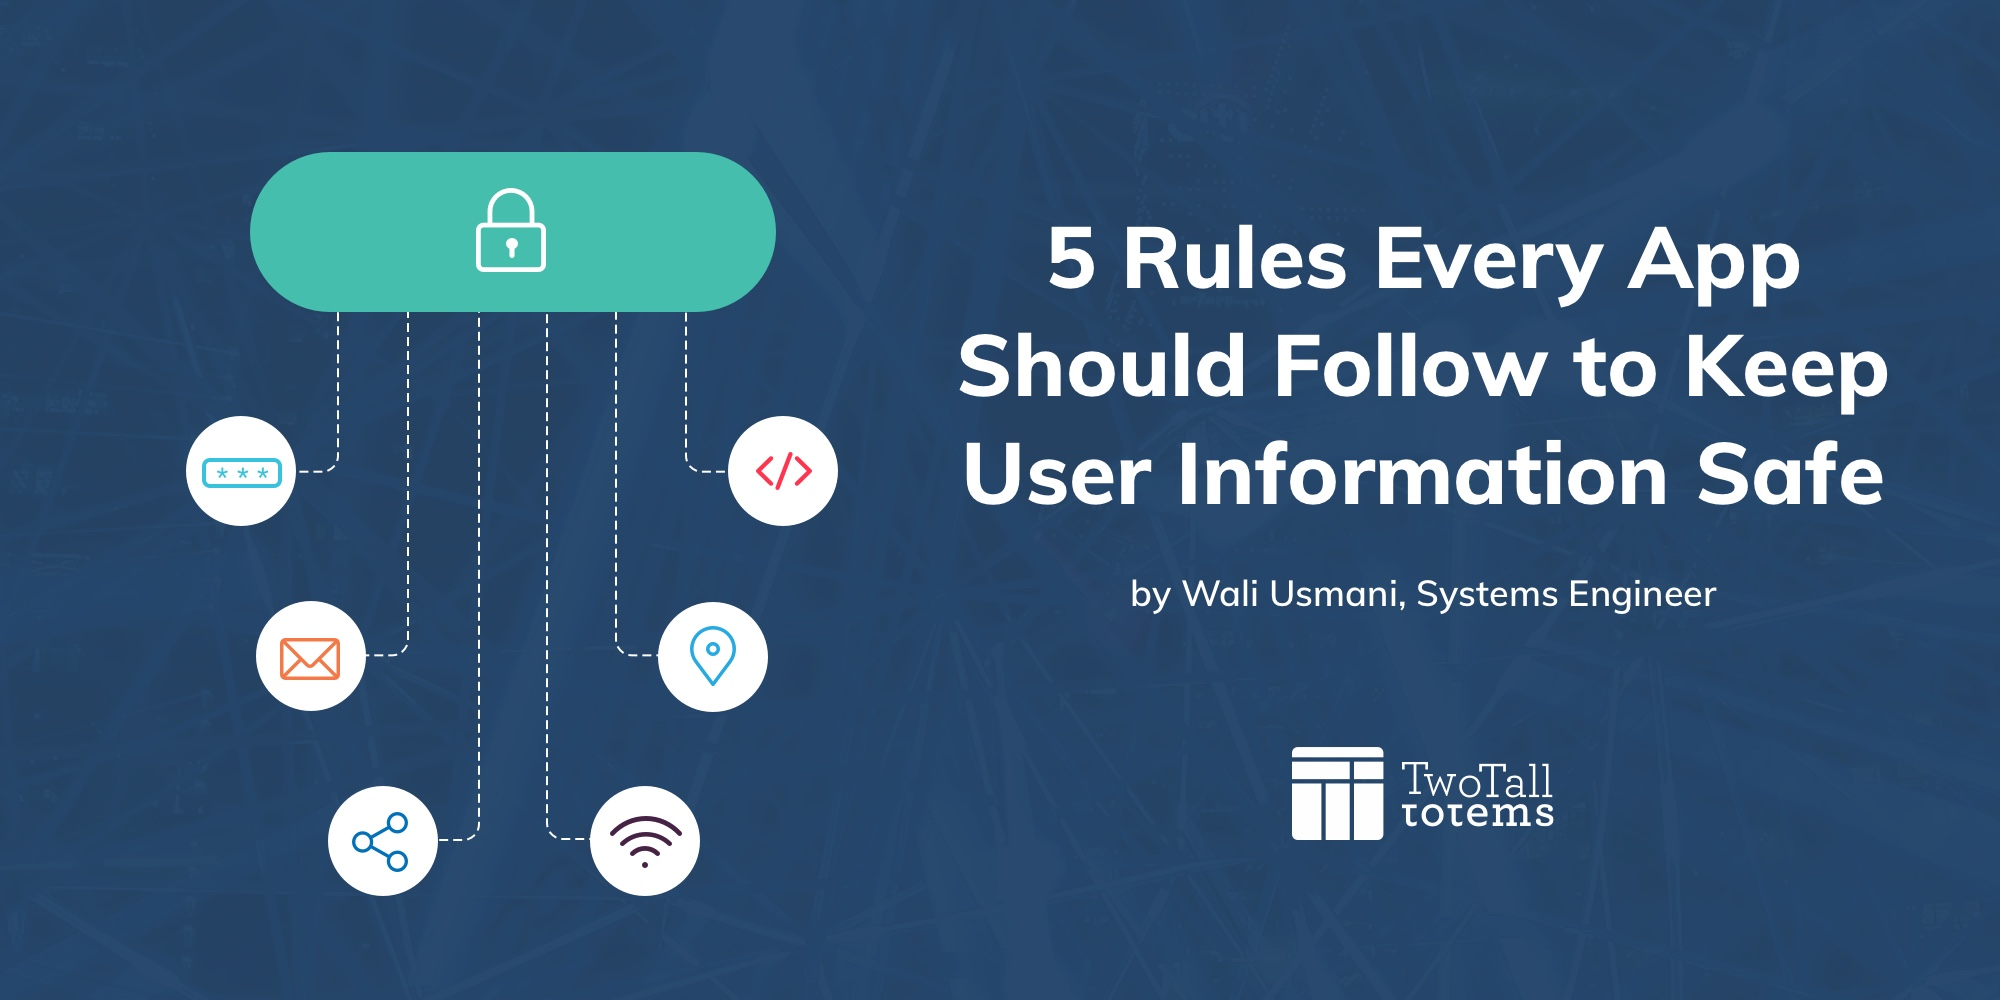 5 basic rules every app should follow to keep user information safe